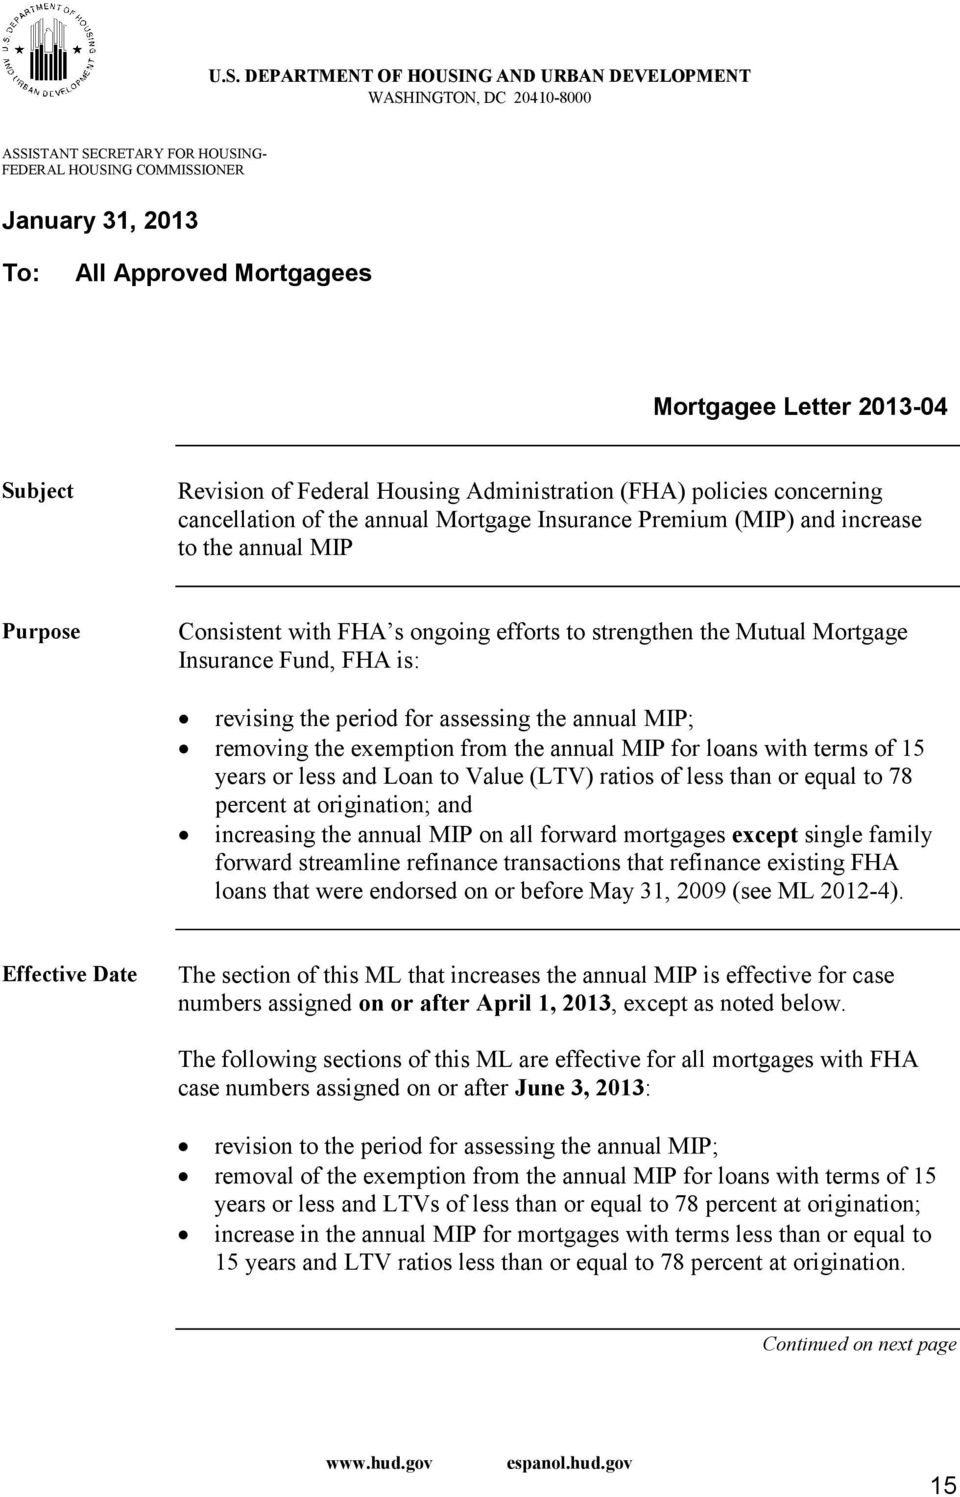 FHA s ongoing efforts to strengthen the Mutual Mortgage Insurance Fund, FHA is: revising the period for assessing the annual MIP; removing the exemption from the annual MIP for loans with terms of 15